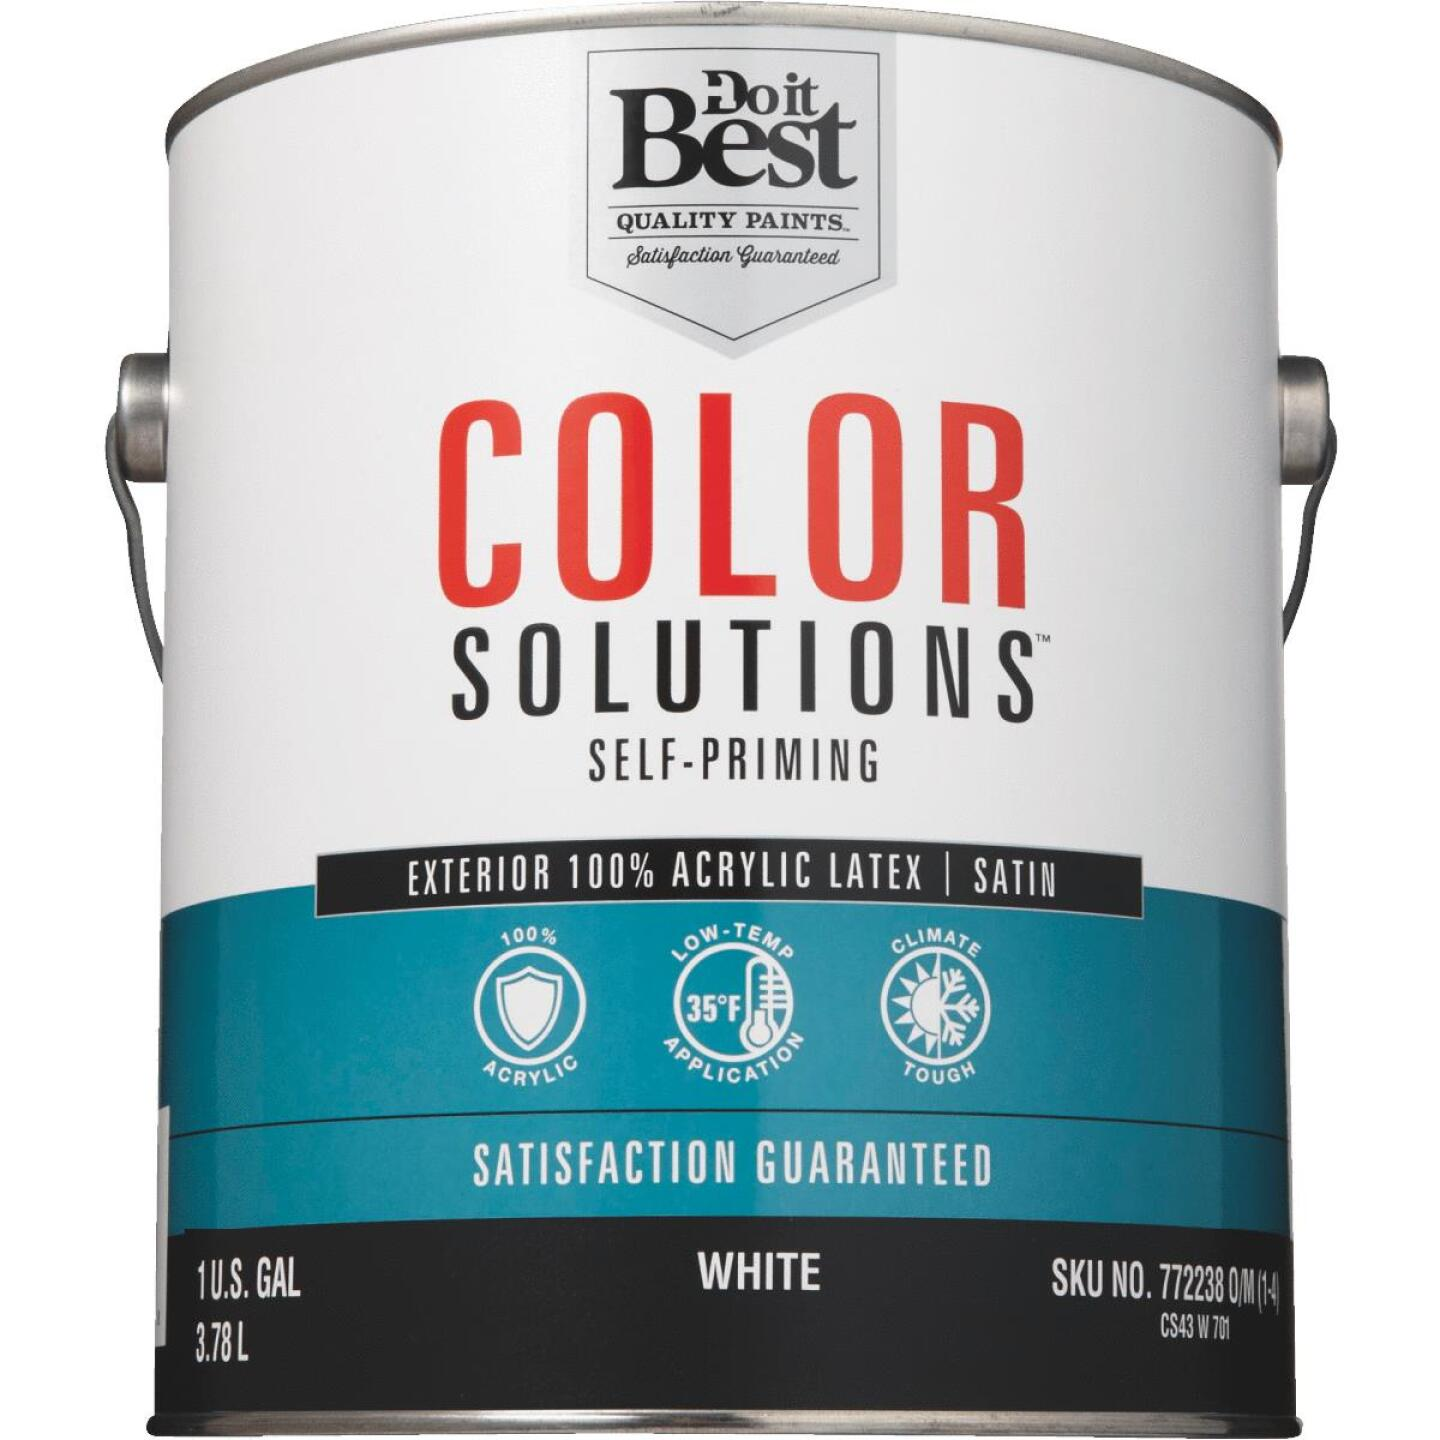 Do it Best Color Solutions 100% Acrylic Latex Self-Priming Satin Exterior House Paint, White, 1 Gal. Image 2